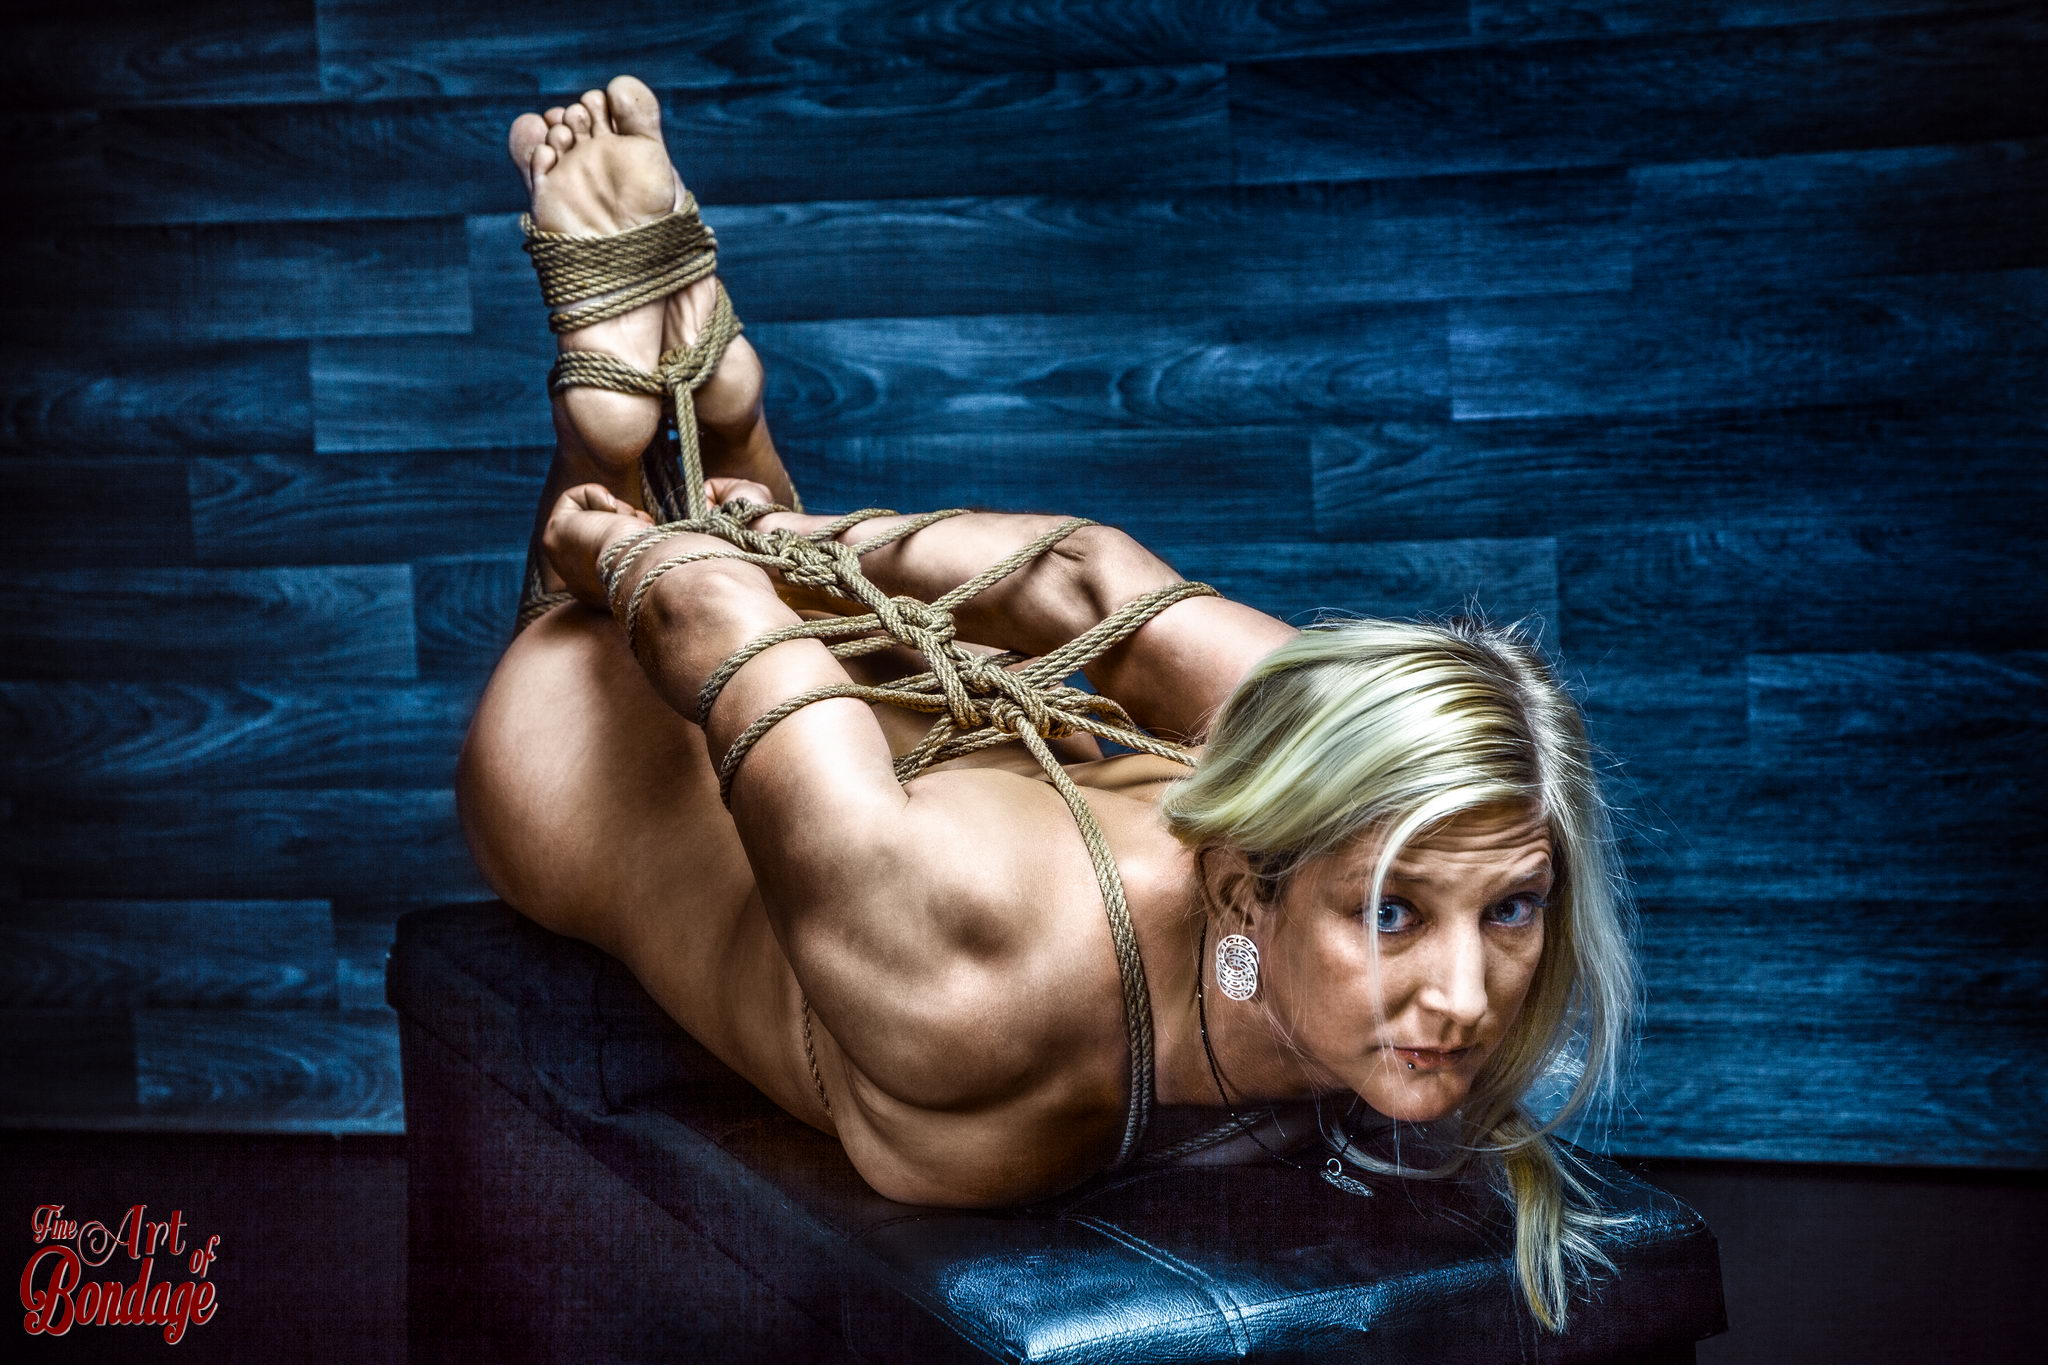 Hogtied pleasure